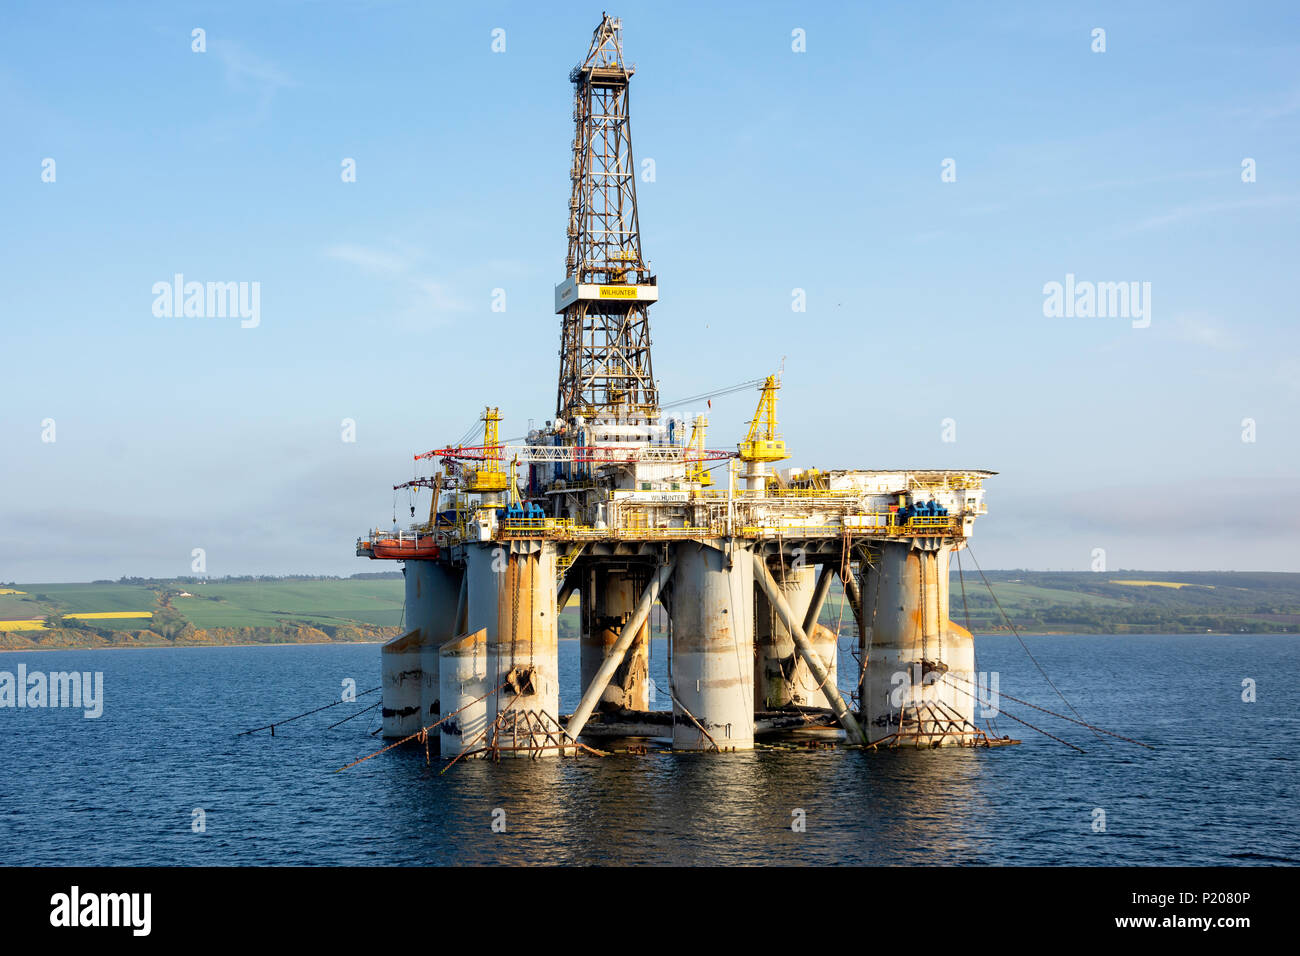 Oil rig anchored in the Cromarty Firth at sunset, Invergordon, Highland, Scotland, United Kingdom - Stock Image